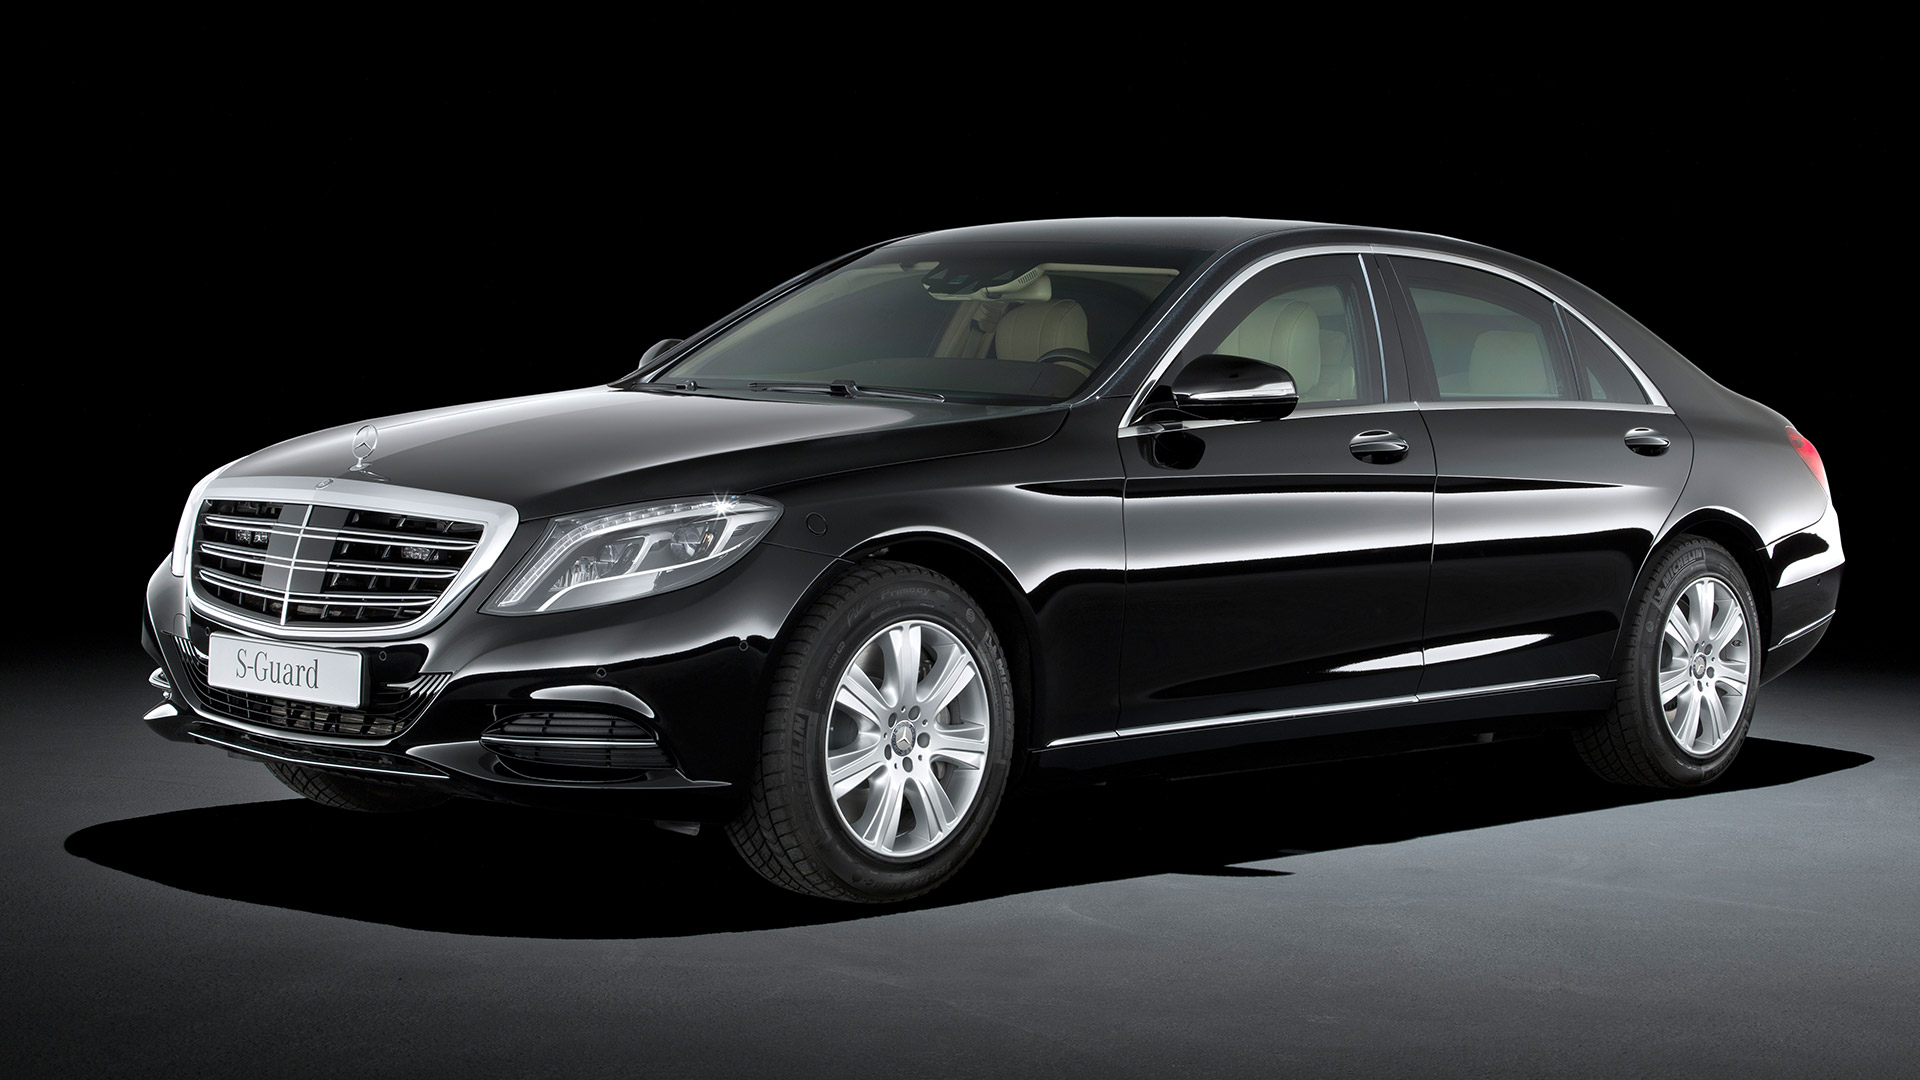 Mercedes-Benz S600 Guard 2015 STD